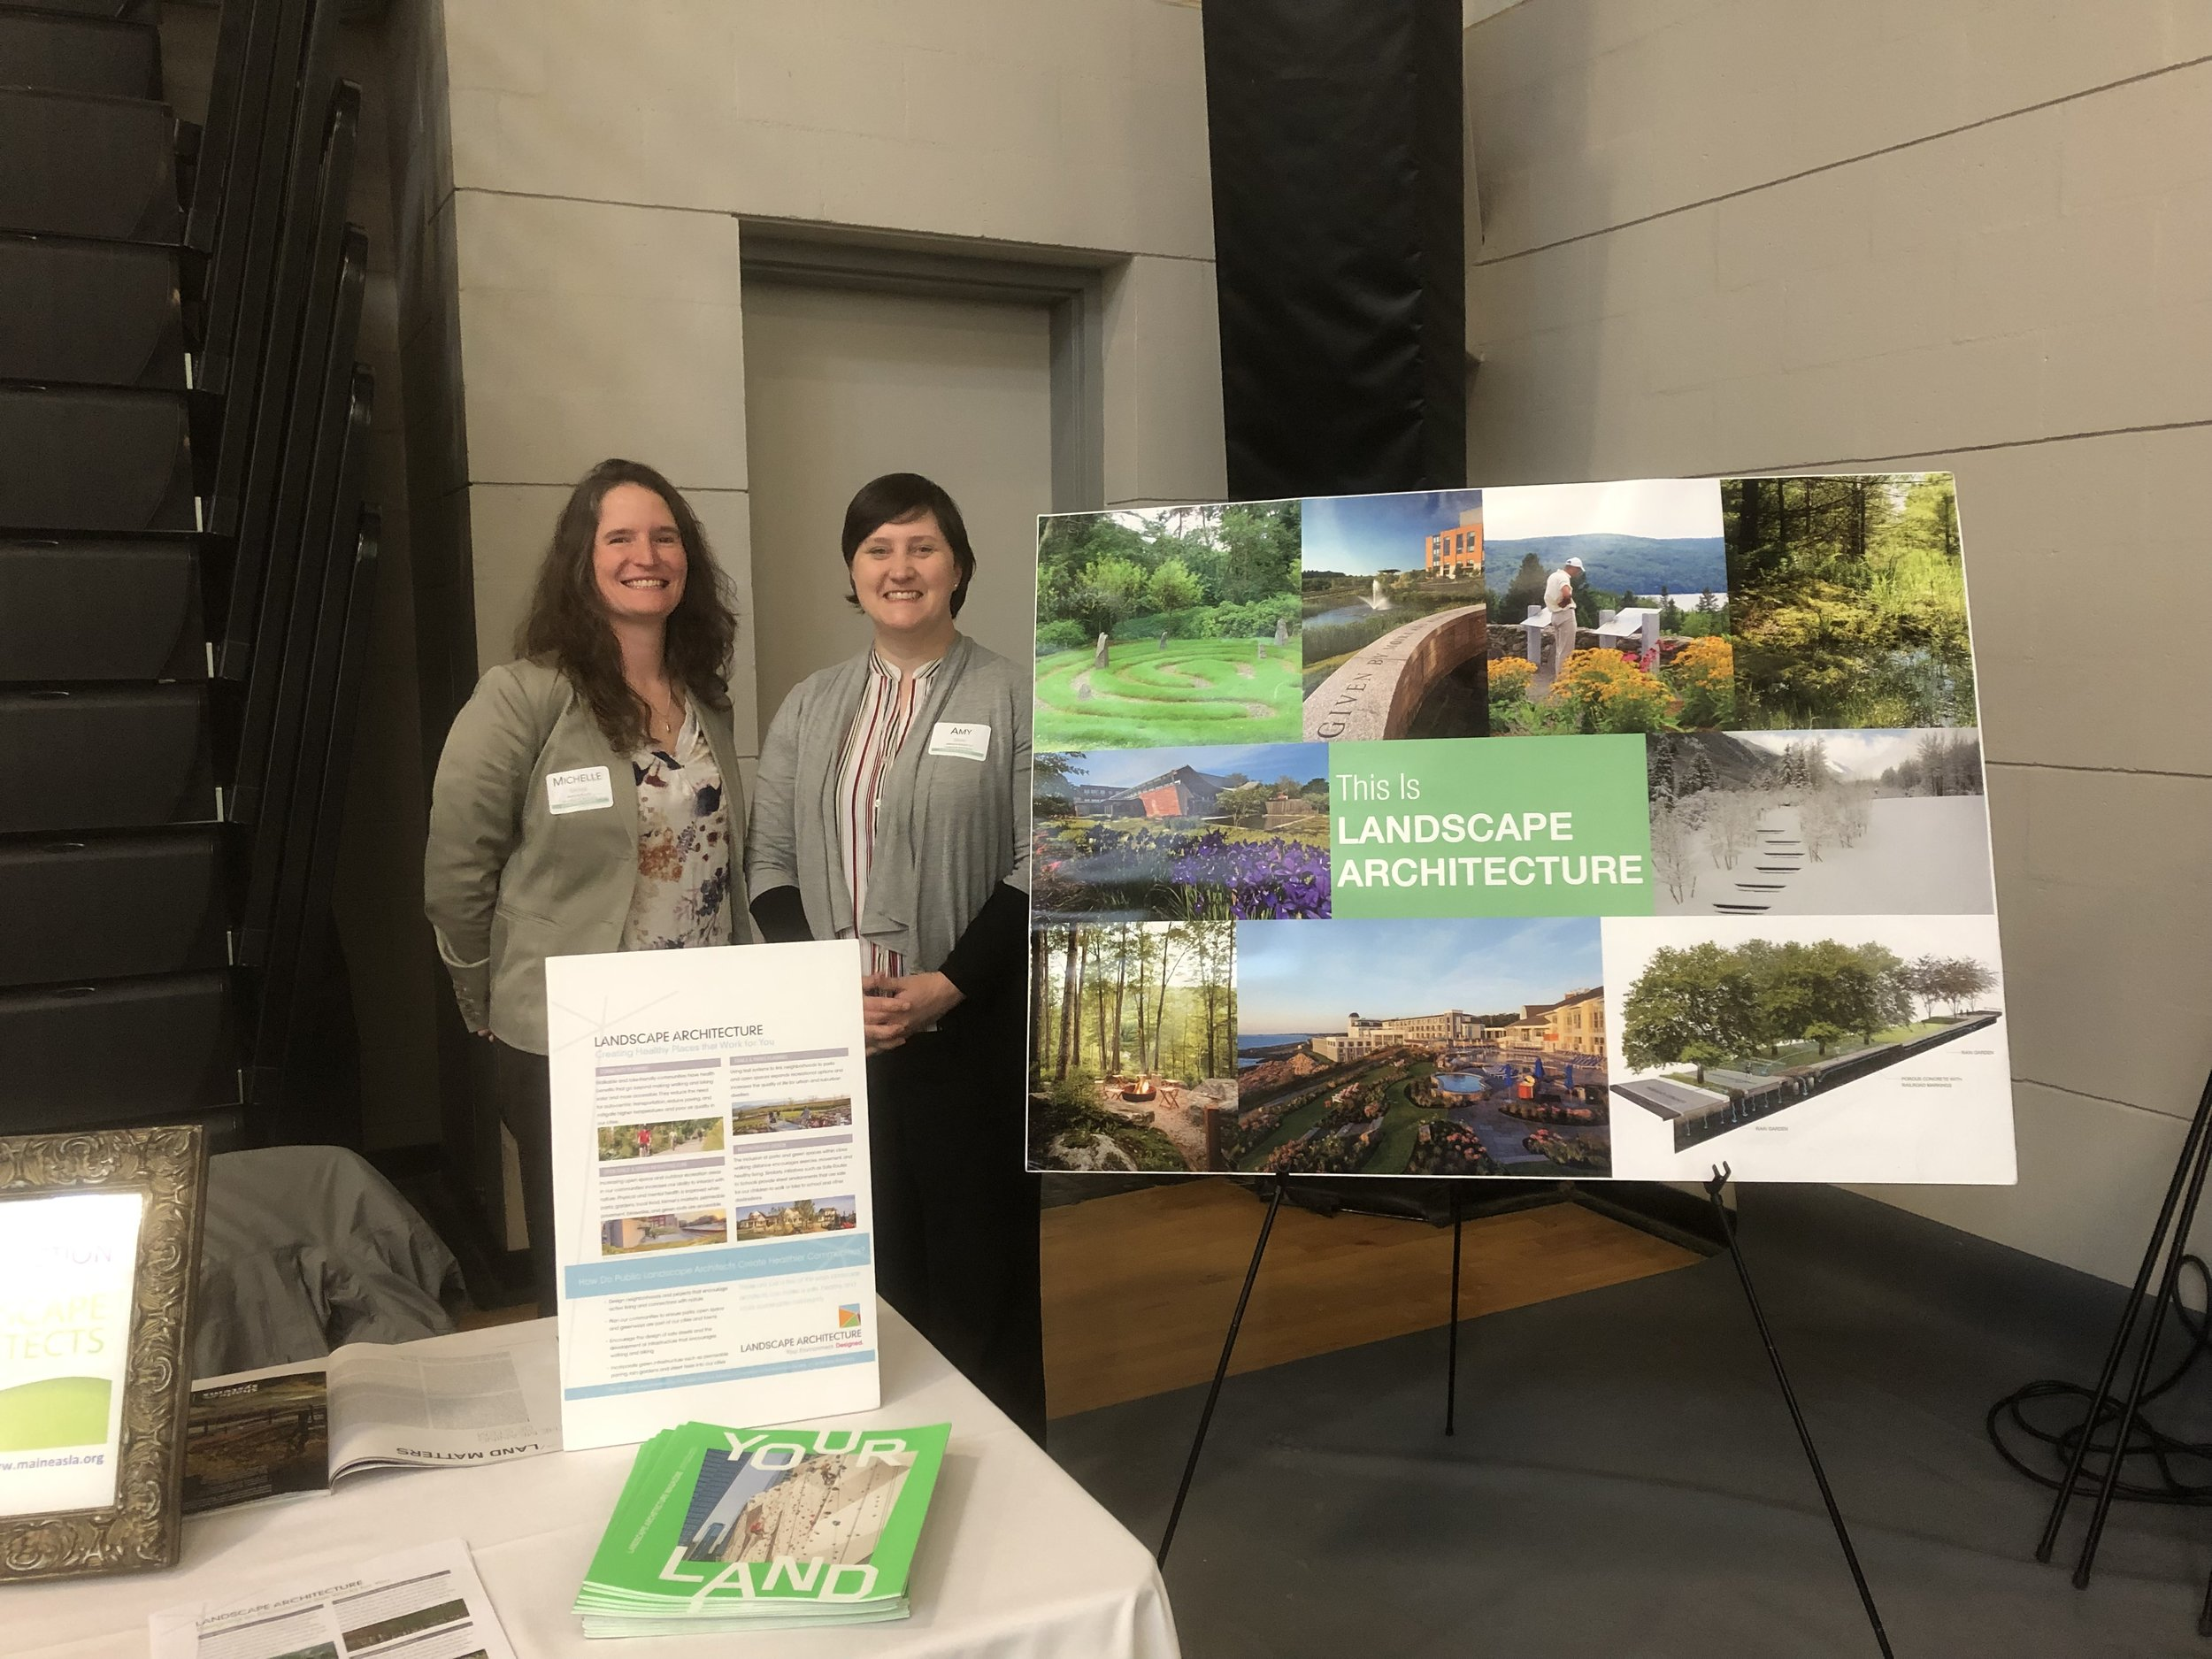 Michelle Grover (MSLA Co-Chair) and Amy Segal (MSLA Treasurer) attended the Maine STEM Summit at Central Maine Community College in Auburn on Friday, May 10th.